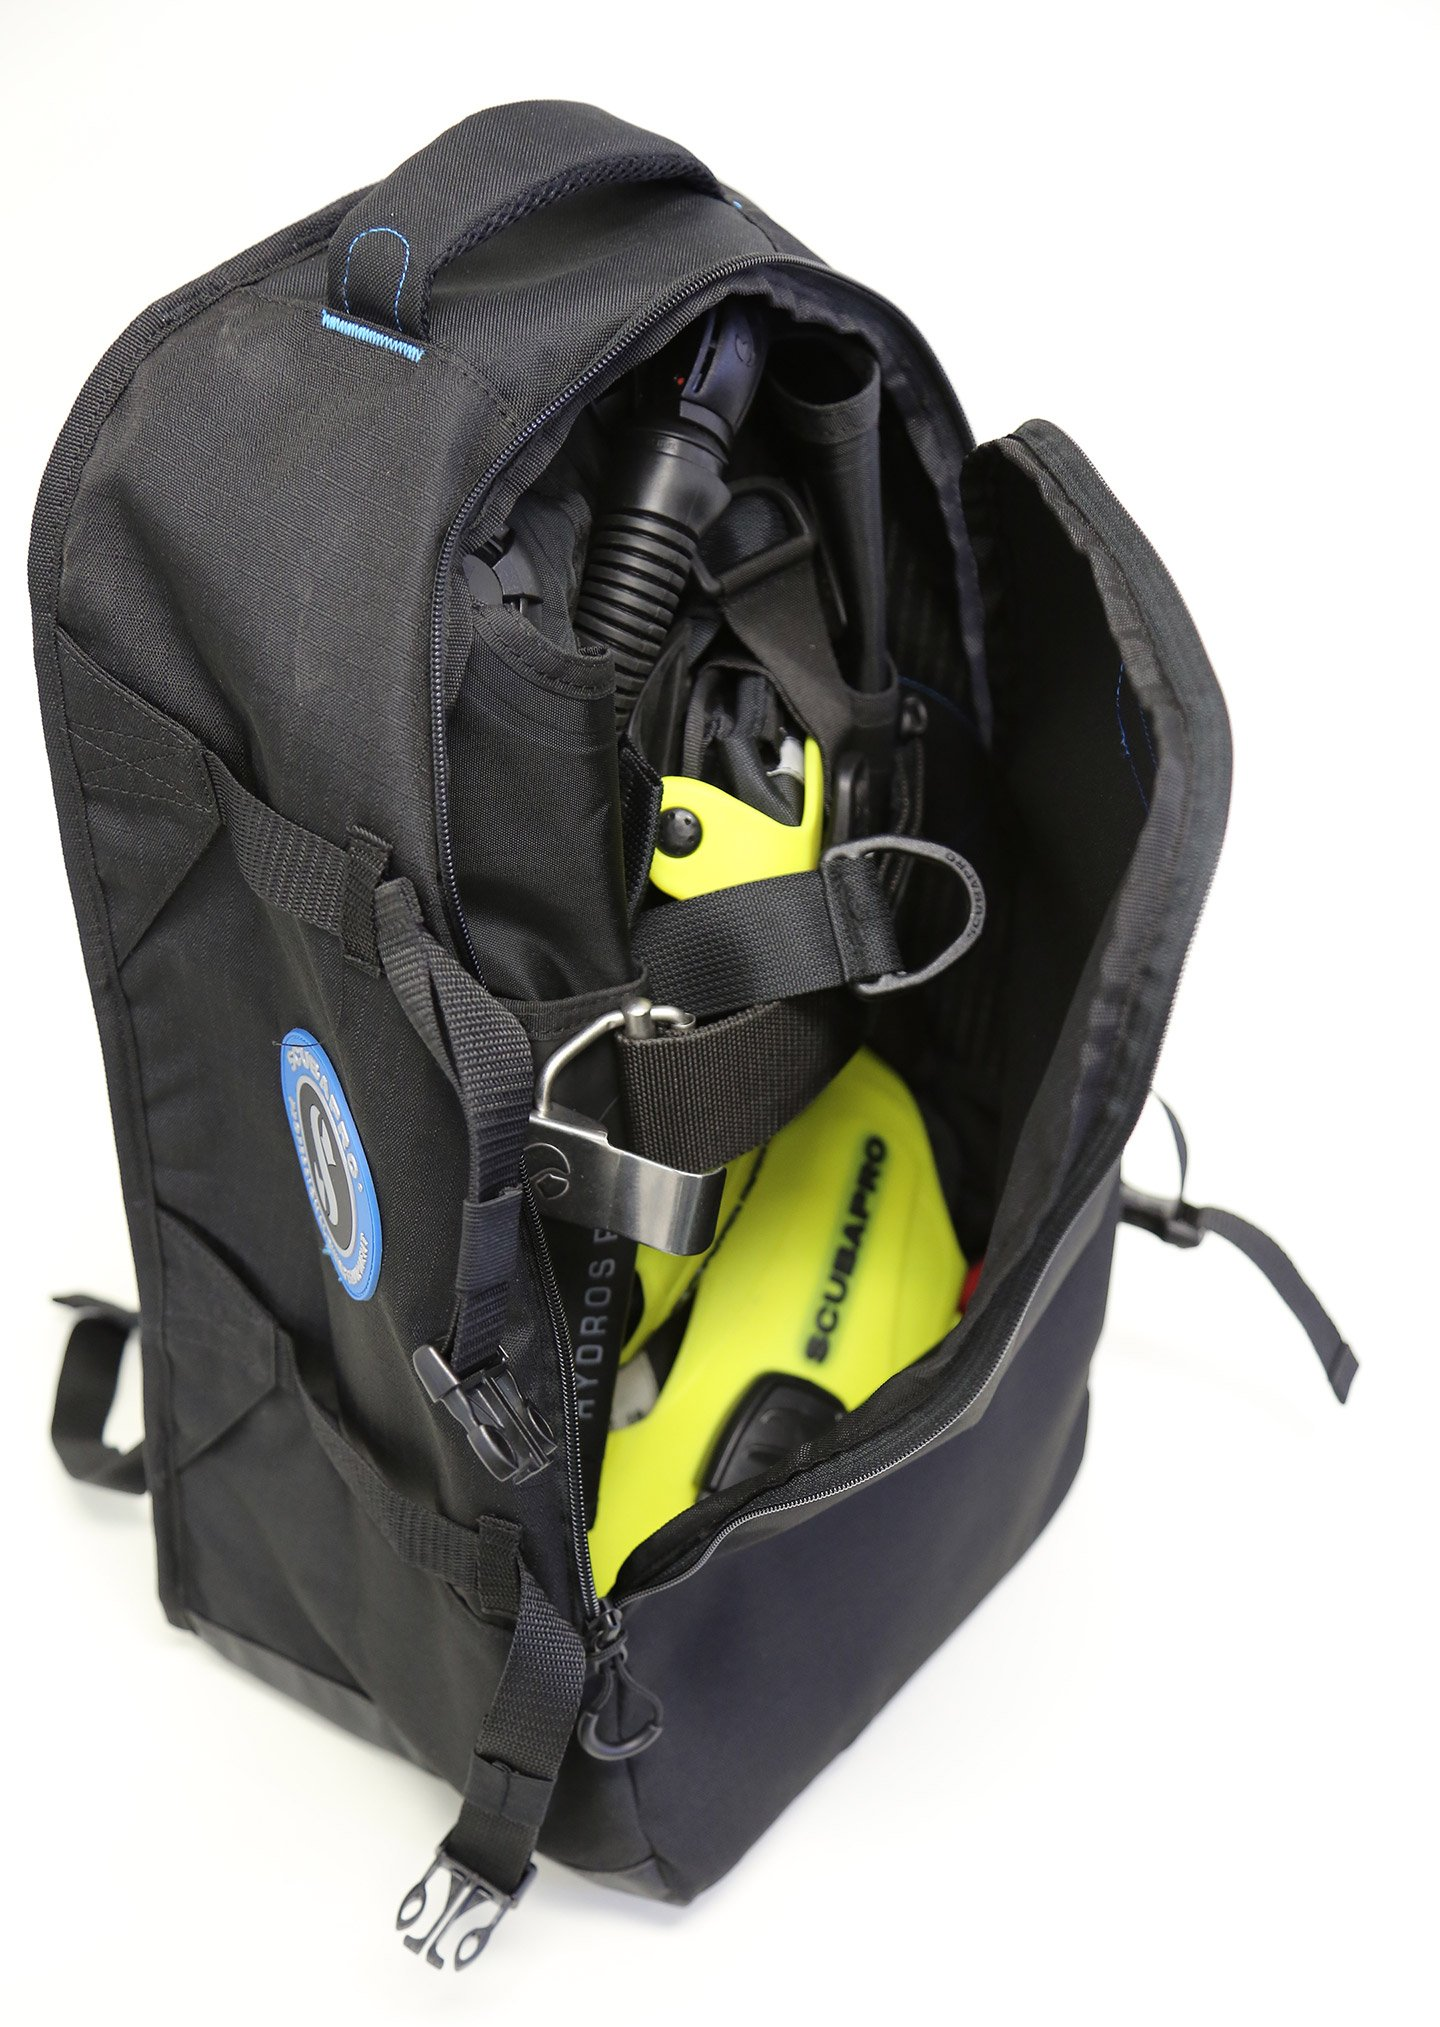 Scubapro S Newest Travel Bc Hydros Pro Recdiving